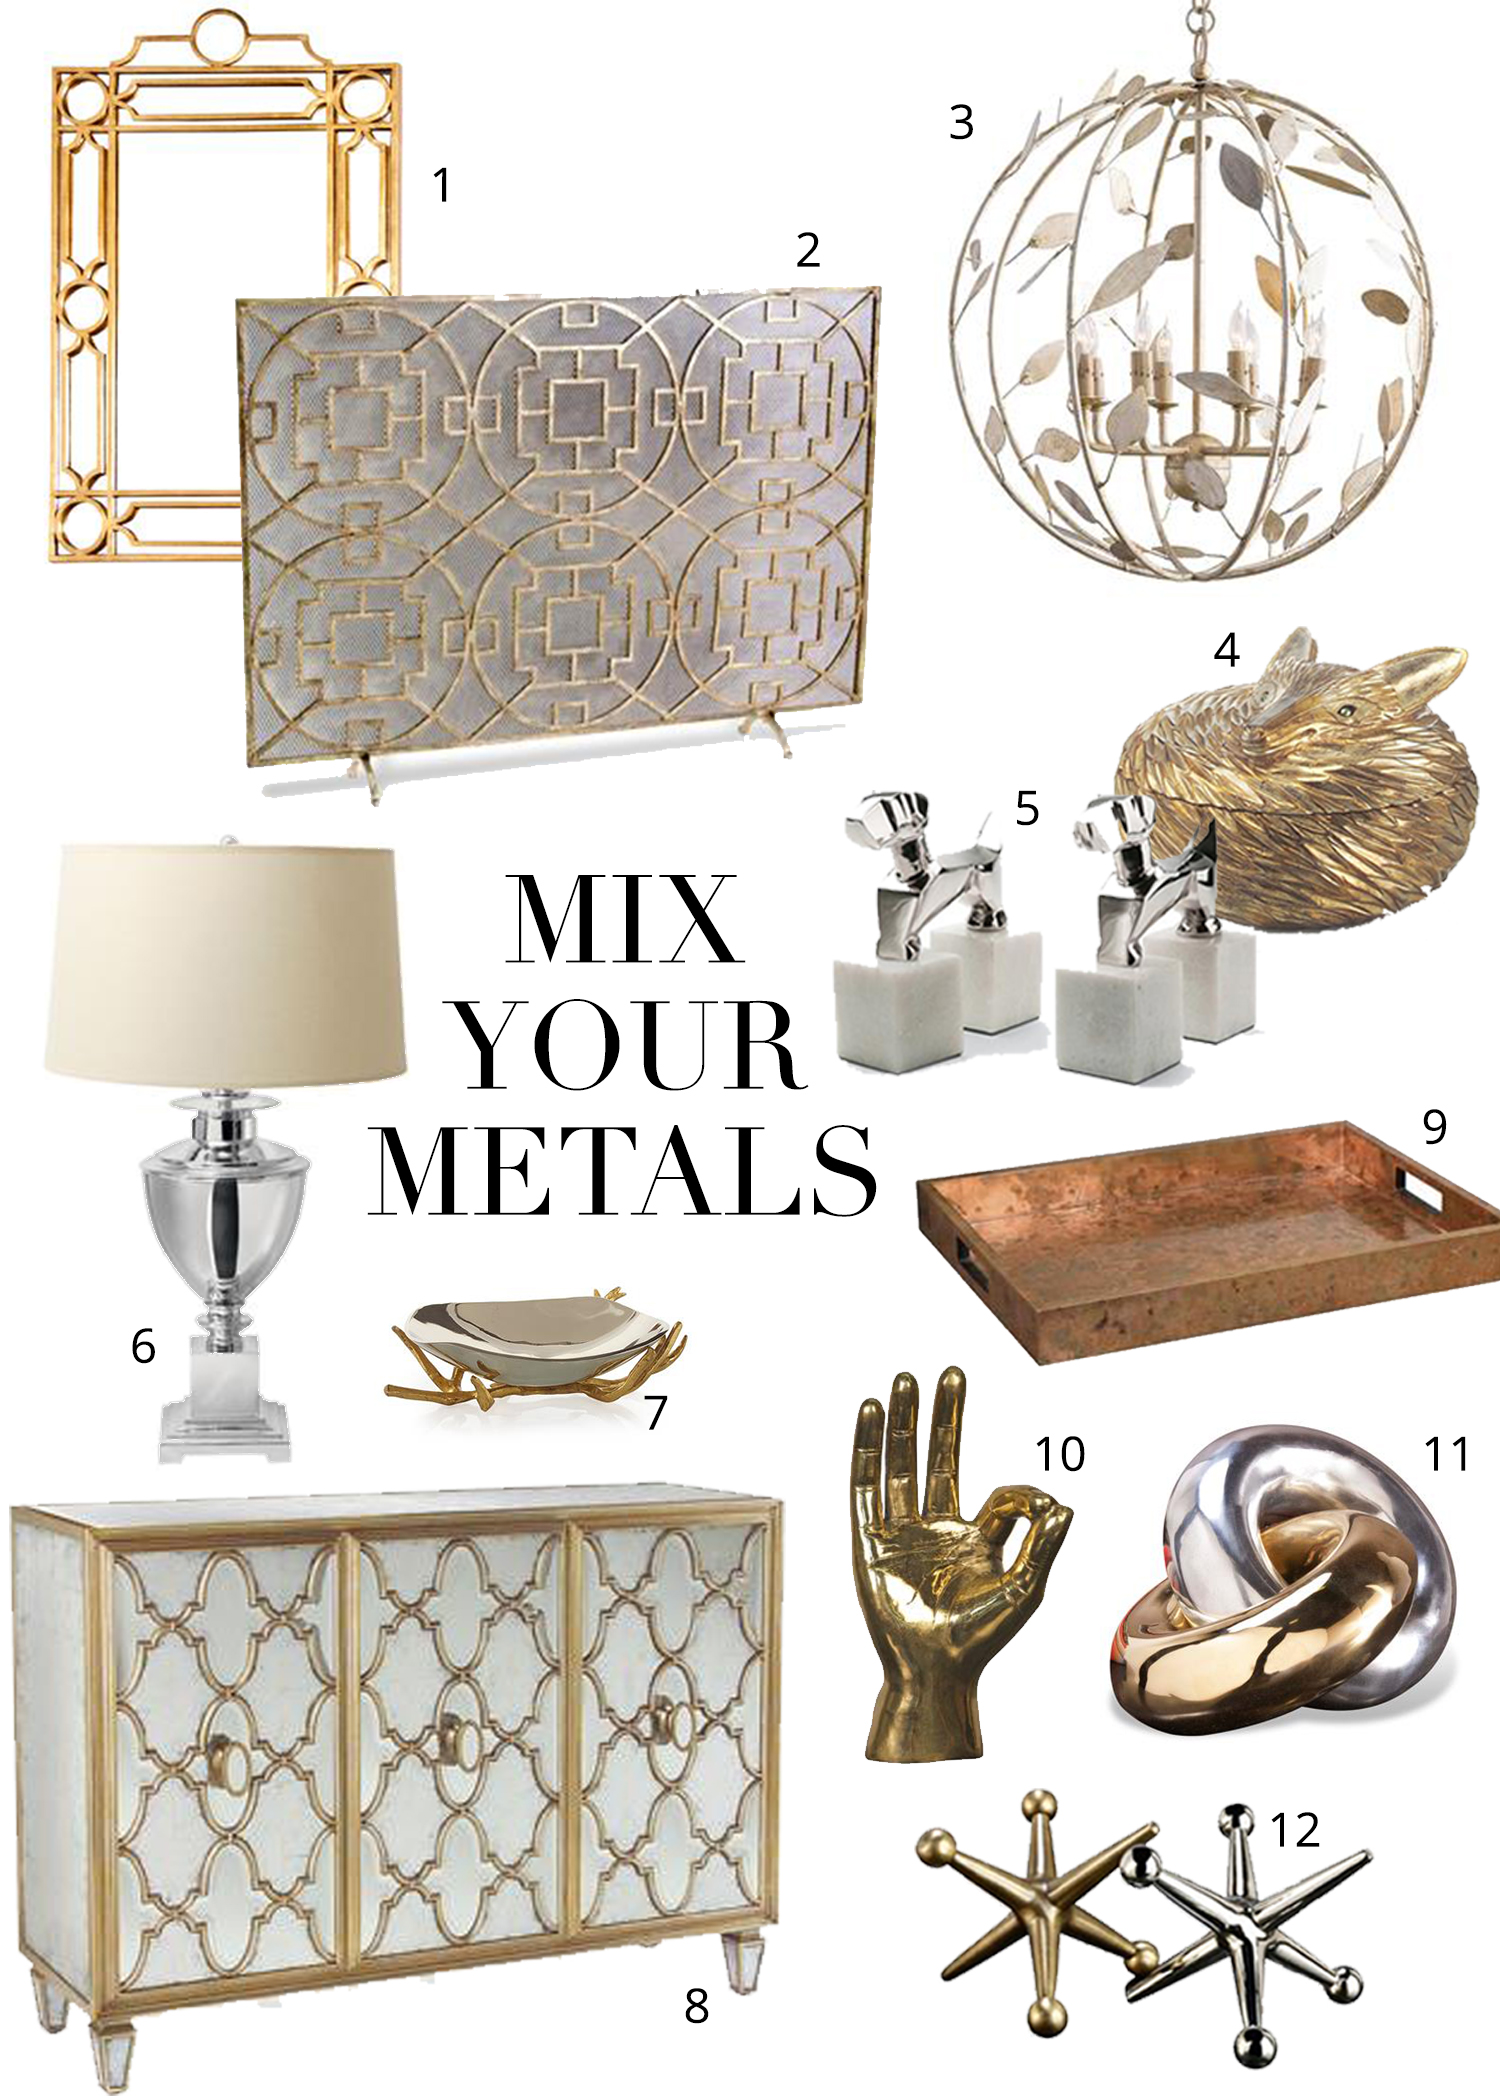 Best Mixing Metals The Do S And Don Ts Kathy Kuo Blog Kathy Kuo Home This Month